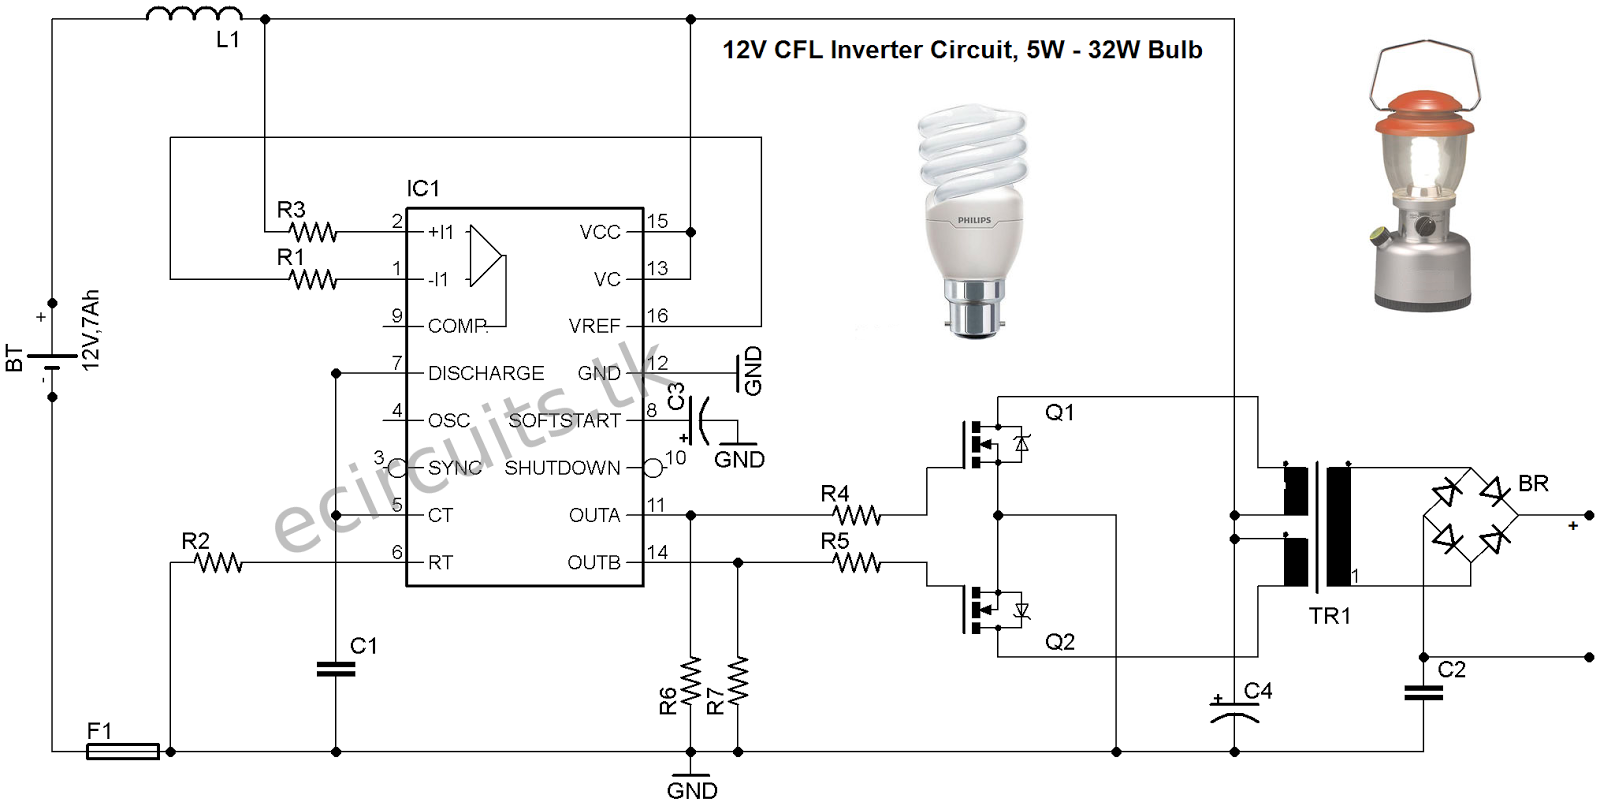 12v cfl emergency light circuit using 3525 ic mini inverter 12v cfl circuit diagram 12v cfl circuit diagram [ 1600 x 806 Pixel ]